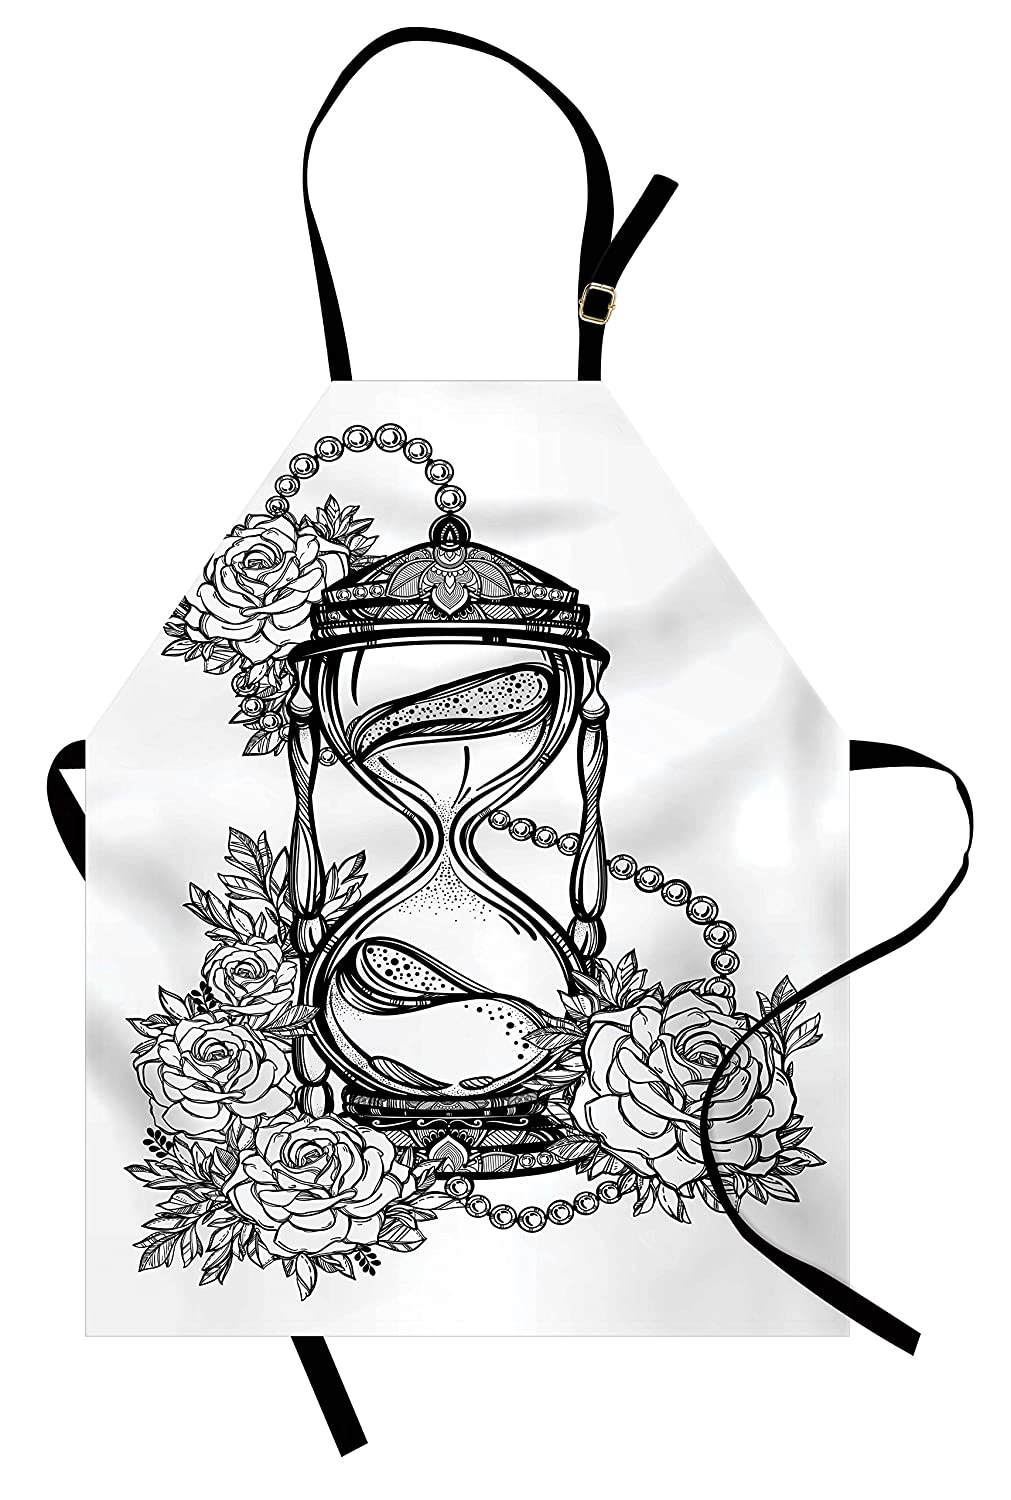 Ambesonne tattoo apron pencil drawing romantic theme hourglass symbol of eternal love with roses print unisex kitchen bib apron with adjustable neck for